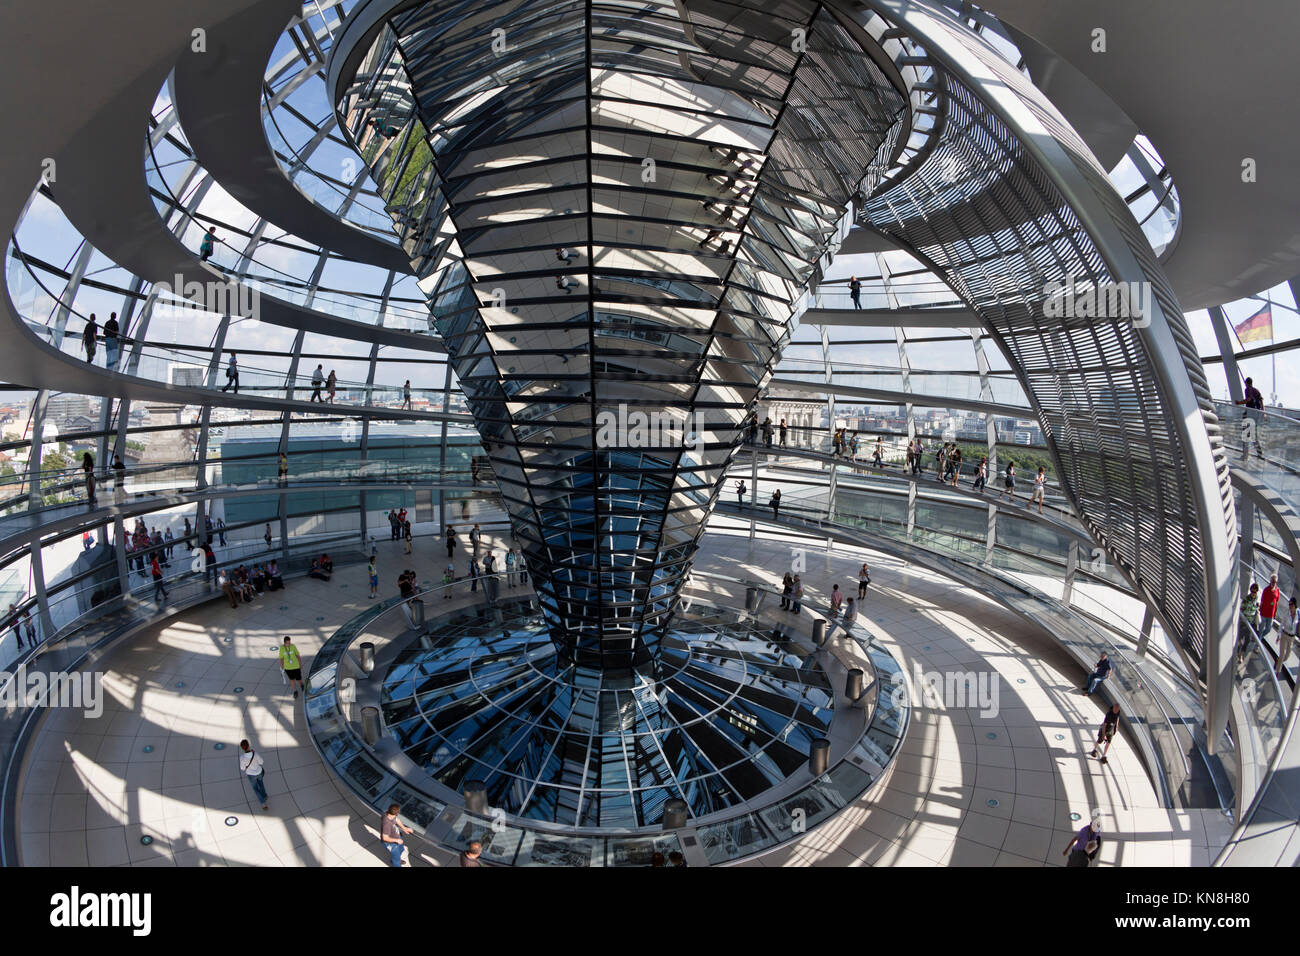 Reichtstag dome interieur, Architect Sir Norman Forster, Berlin - Stock Image